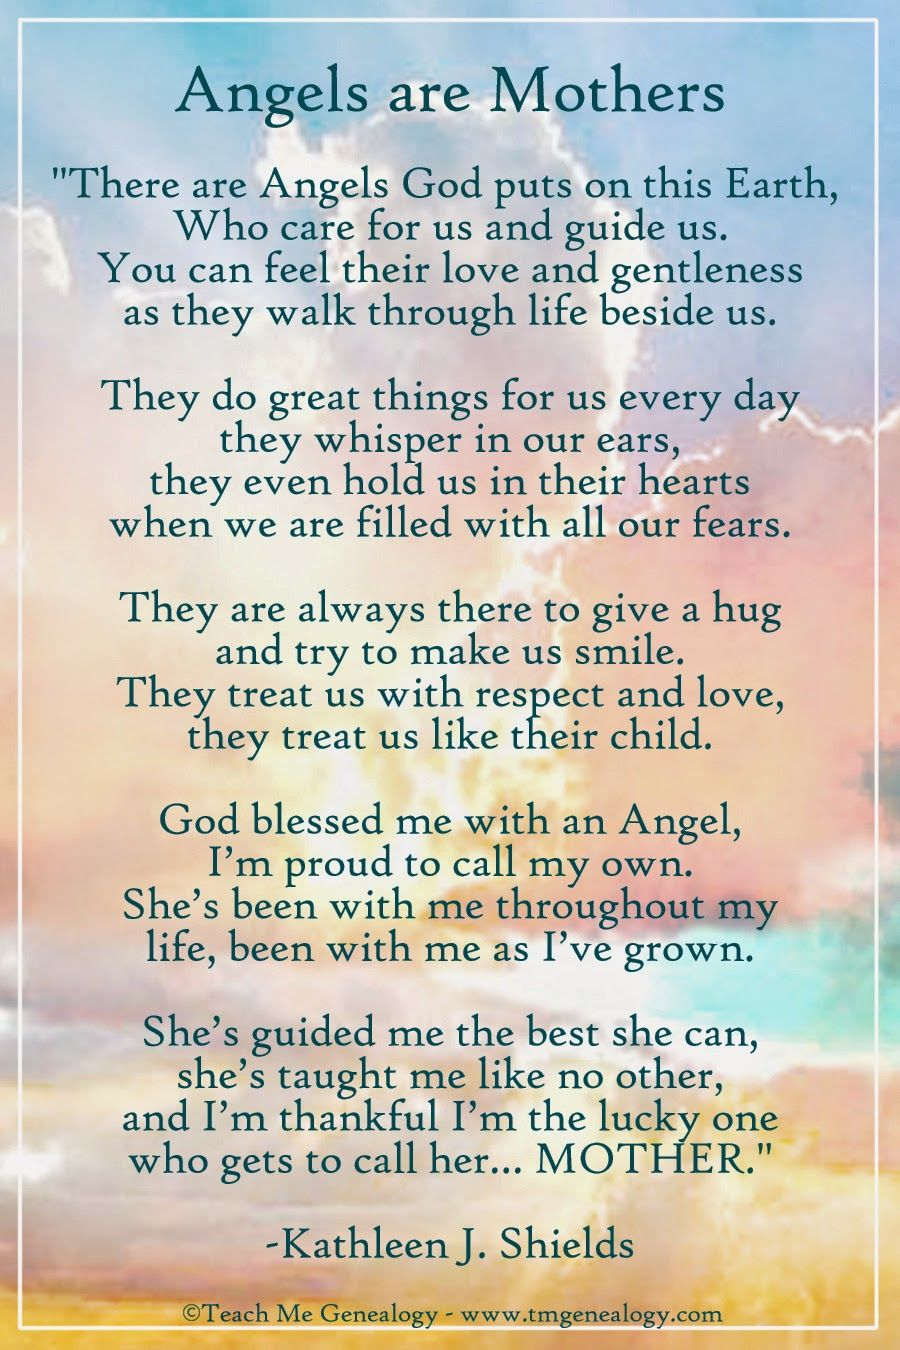 Angels Are Mothers Poem By Kathleen J. Shields ~ Teach Me ...